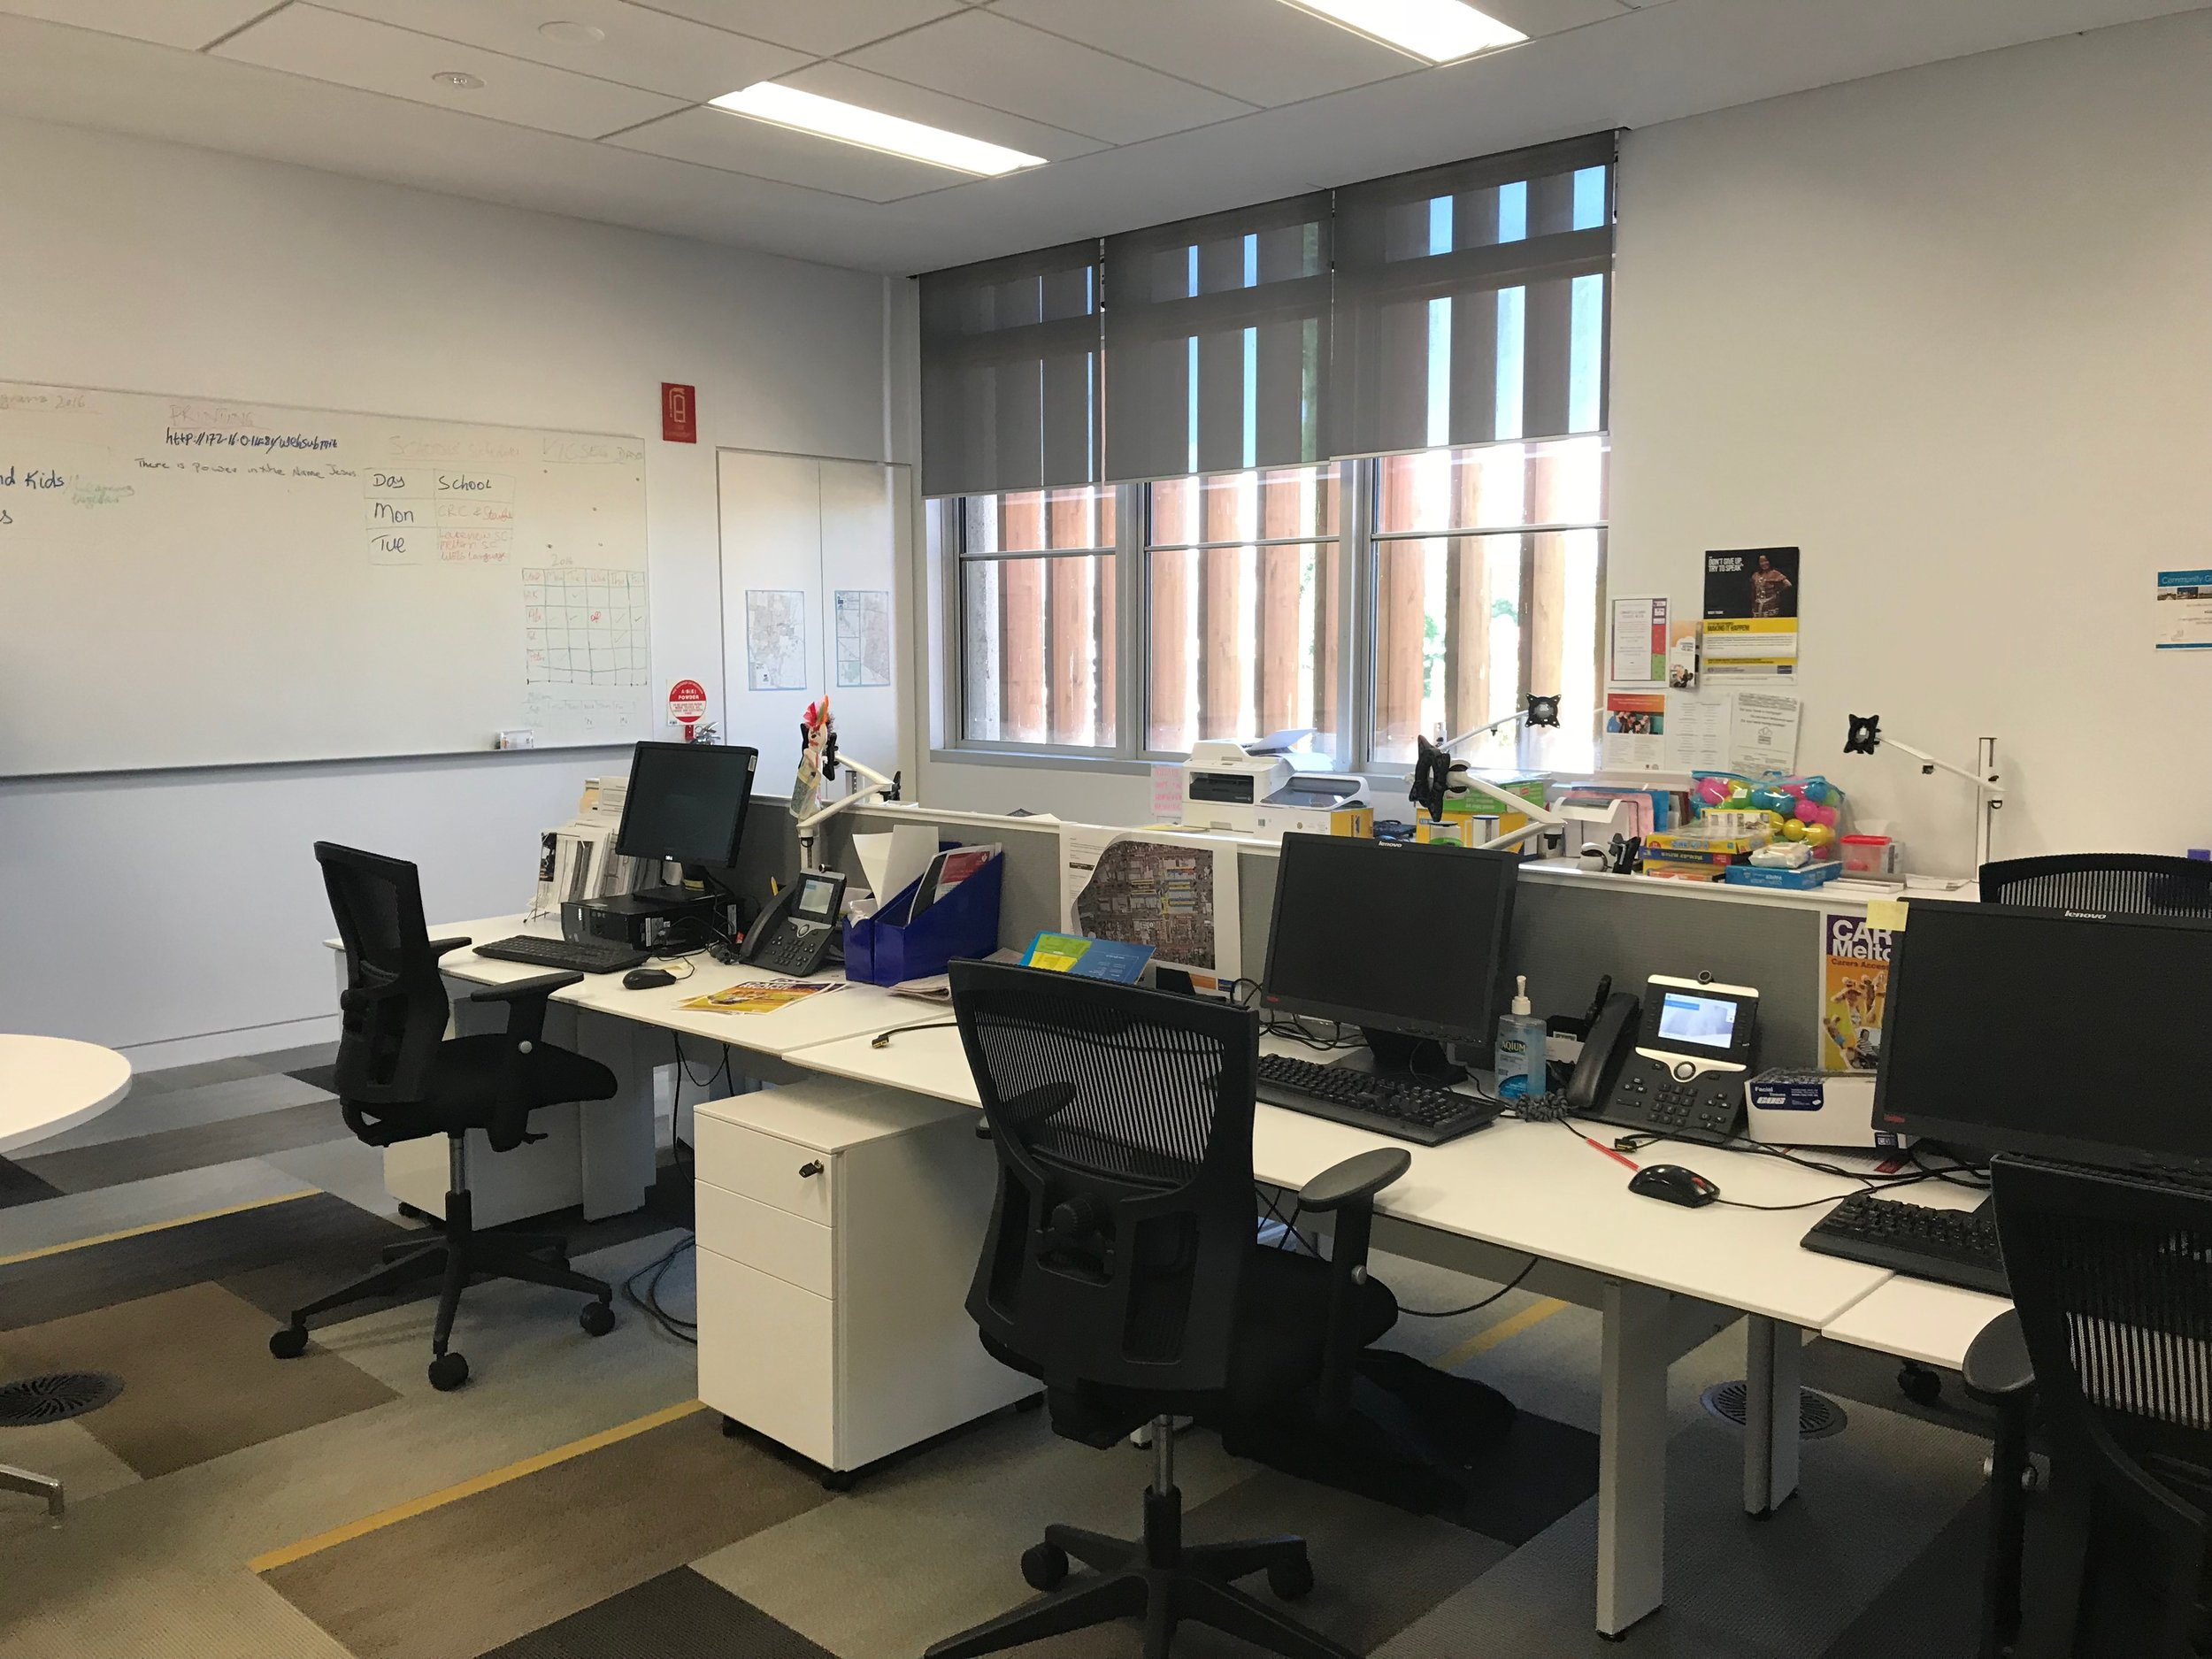 A small co-working space provides office space for local services including a legal service.